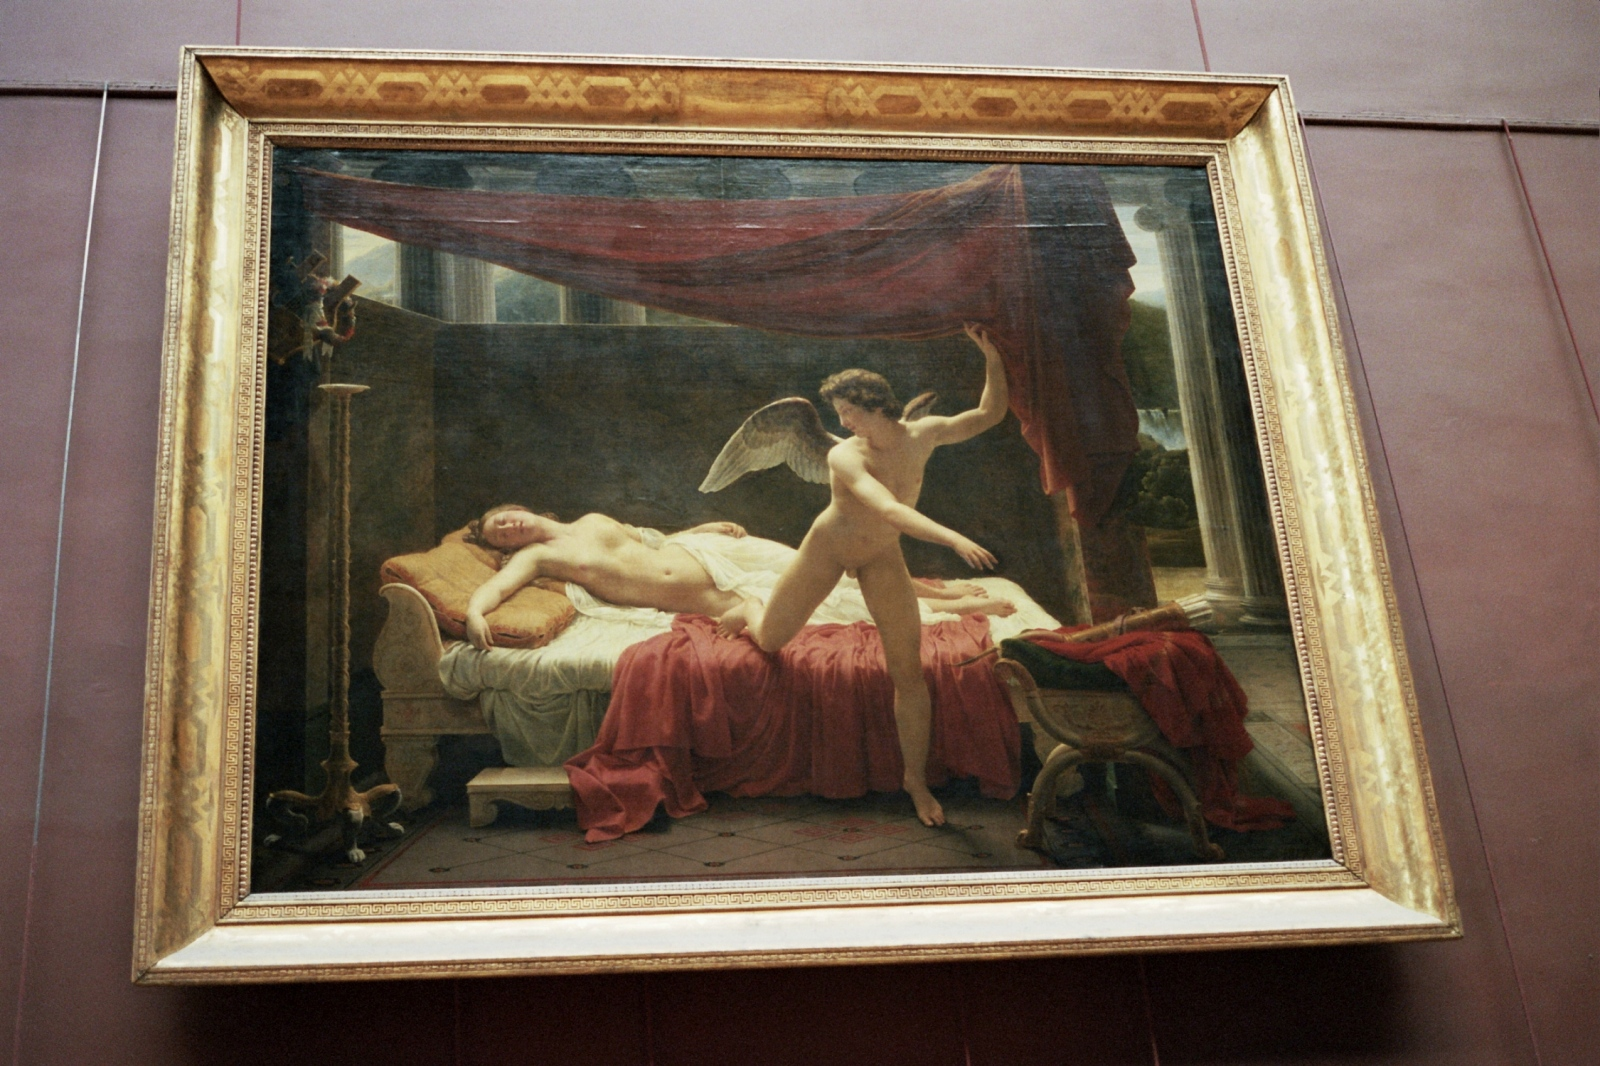 Eros and Psyche at the Louvre, Paris, France